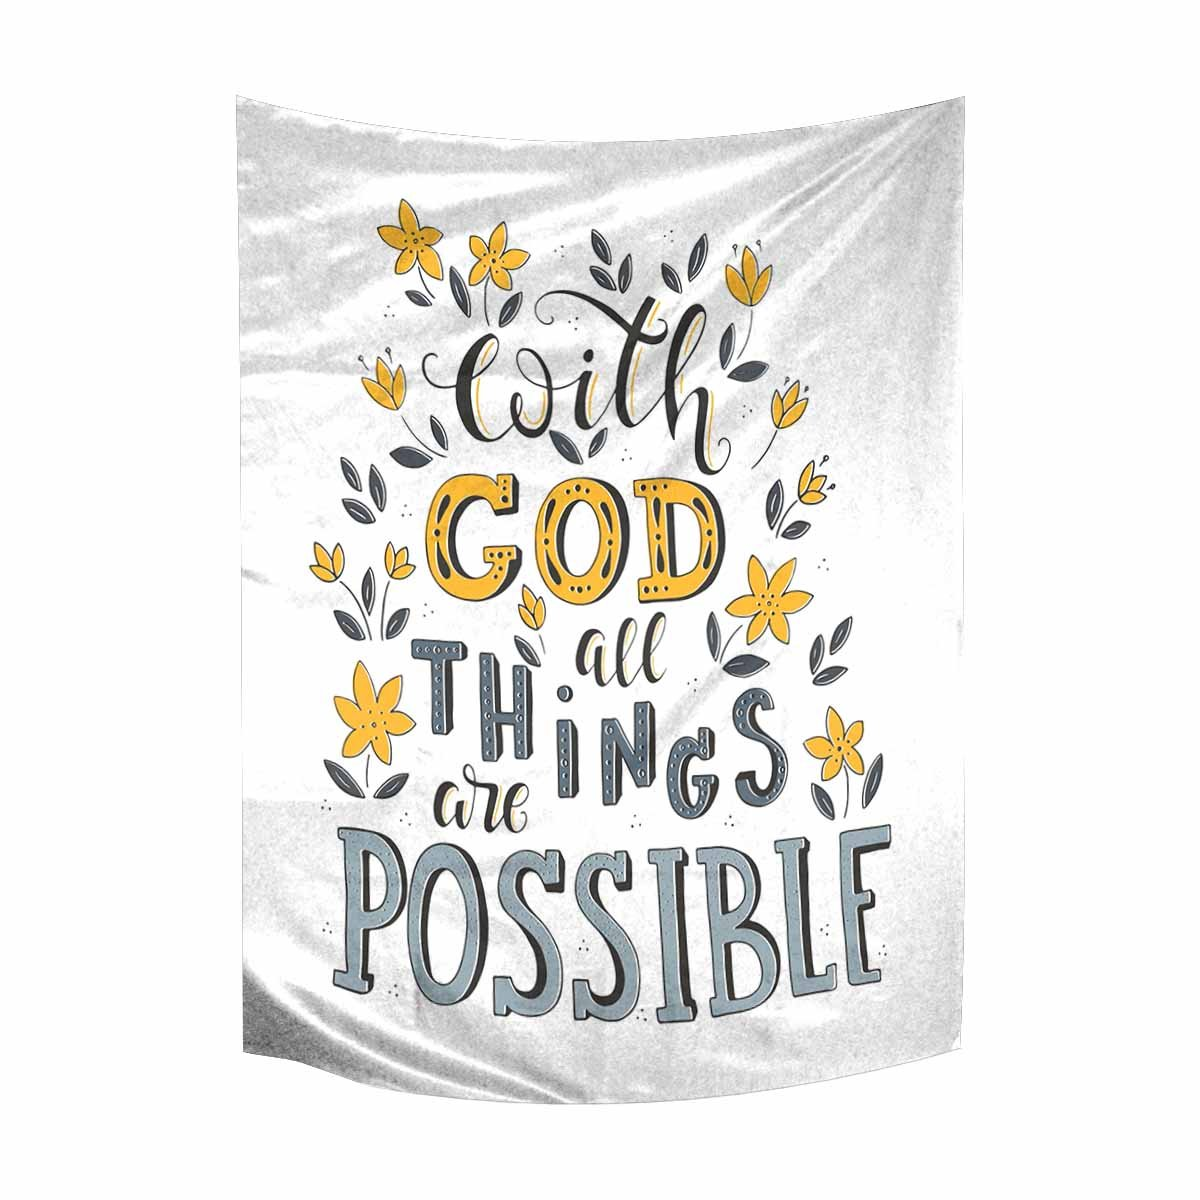 InterestPrint Christian Bible Verse With God All Things Are Possible Tapestry Wall Hanging Cotton Linen Tapestries Art for Bedroom Dorm Home Decor, 60 W X 80 L Inches